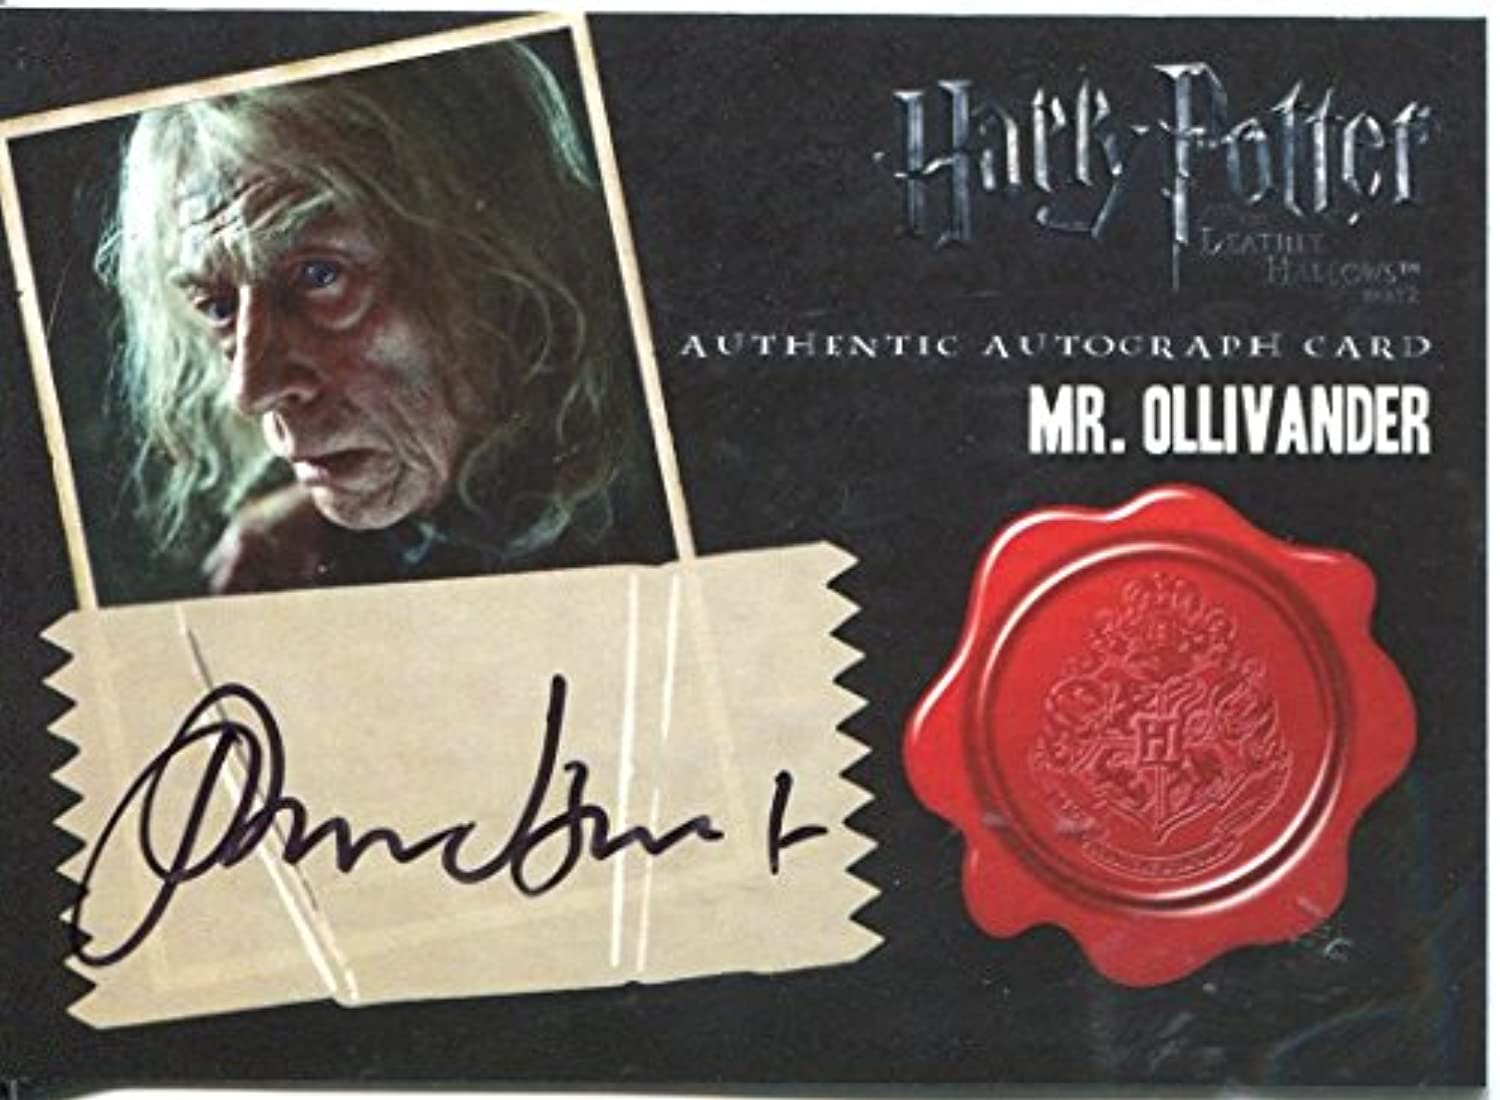 Harry Potter Deathly Hallows Pt. 2 Autograph John Hurt as Mr. Ollivander